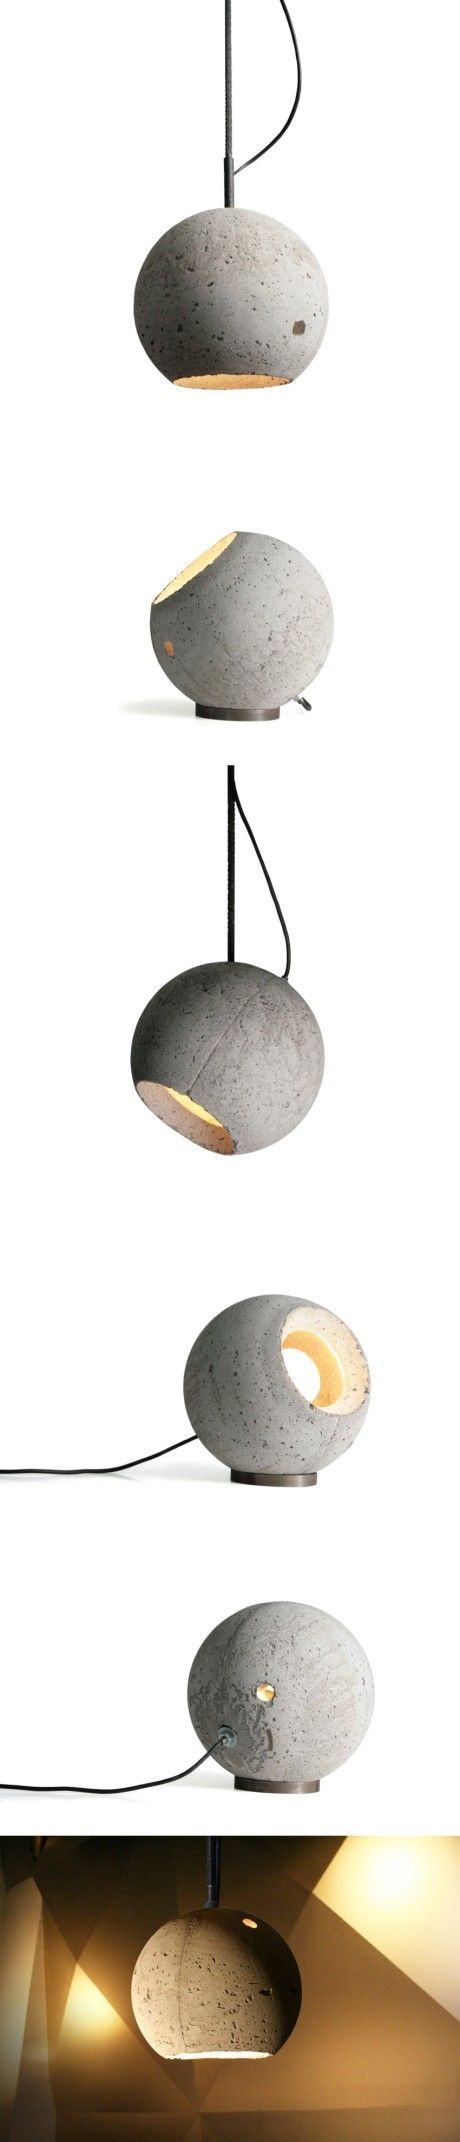 It also can be used as a floor lamp.                                                                                                                                                     More